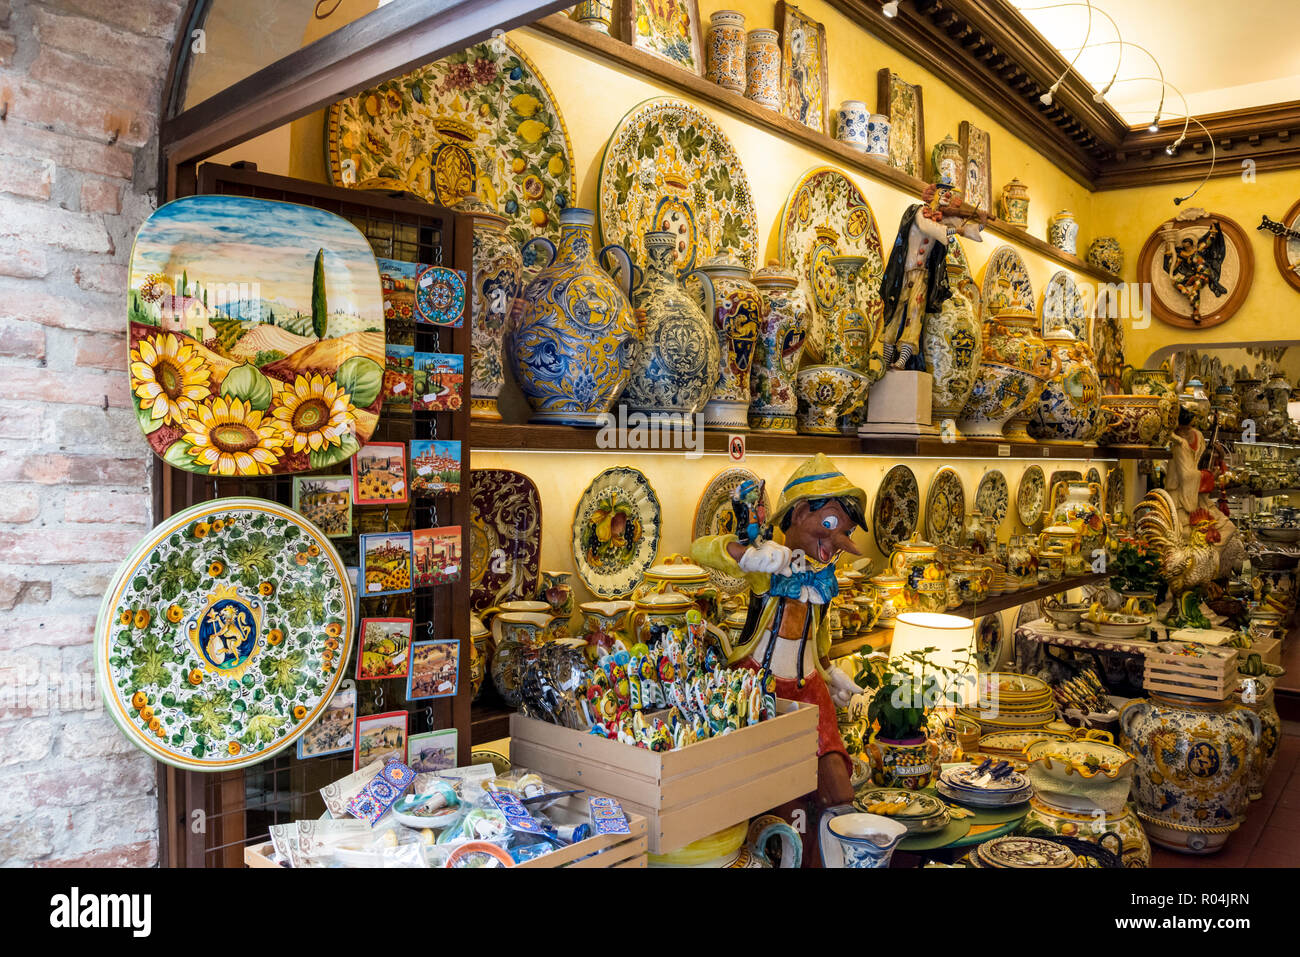 Variety of ceramic artefacts on display in a souvenir shop, hilltop town of San Gimignano, Tuscany, Italy - Stock Image